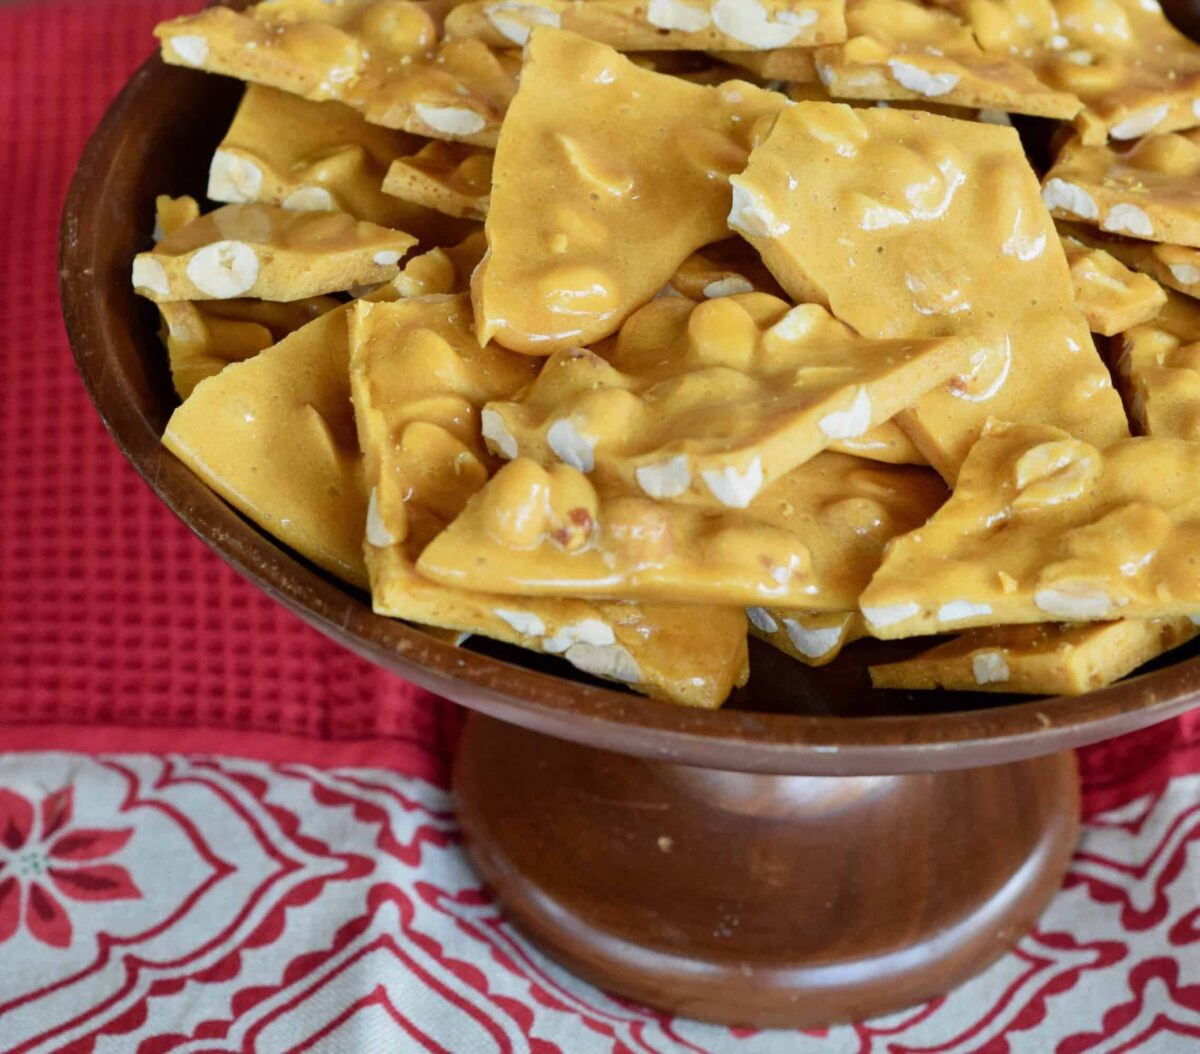 Peanut Brittle in a wooden cake stand on red poinsettia cloth.